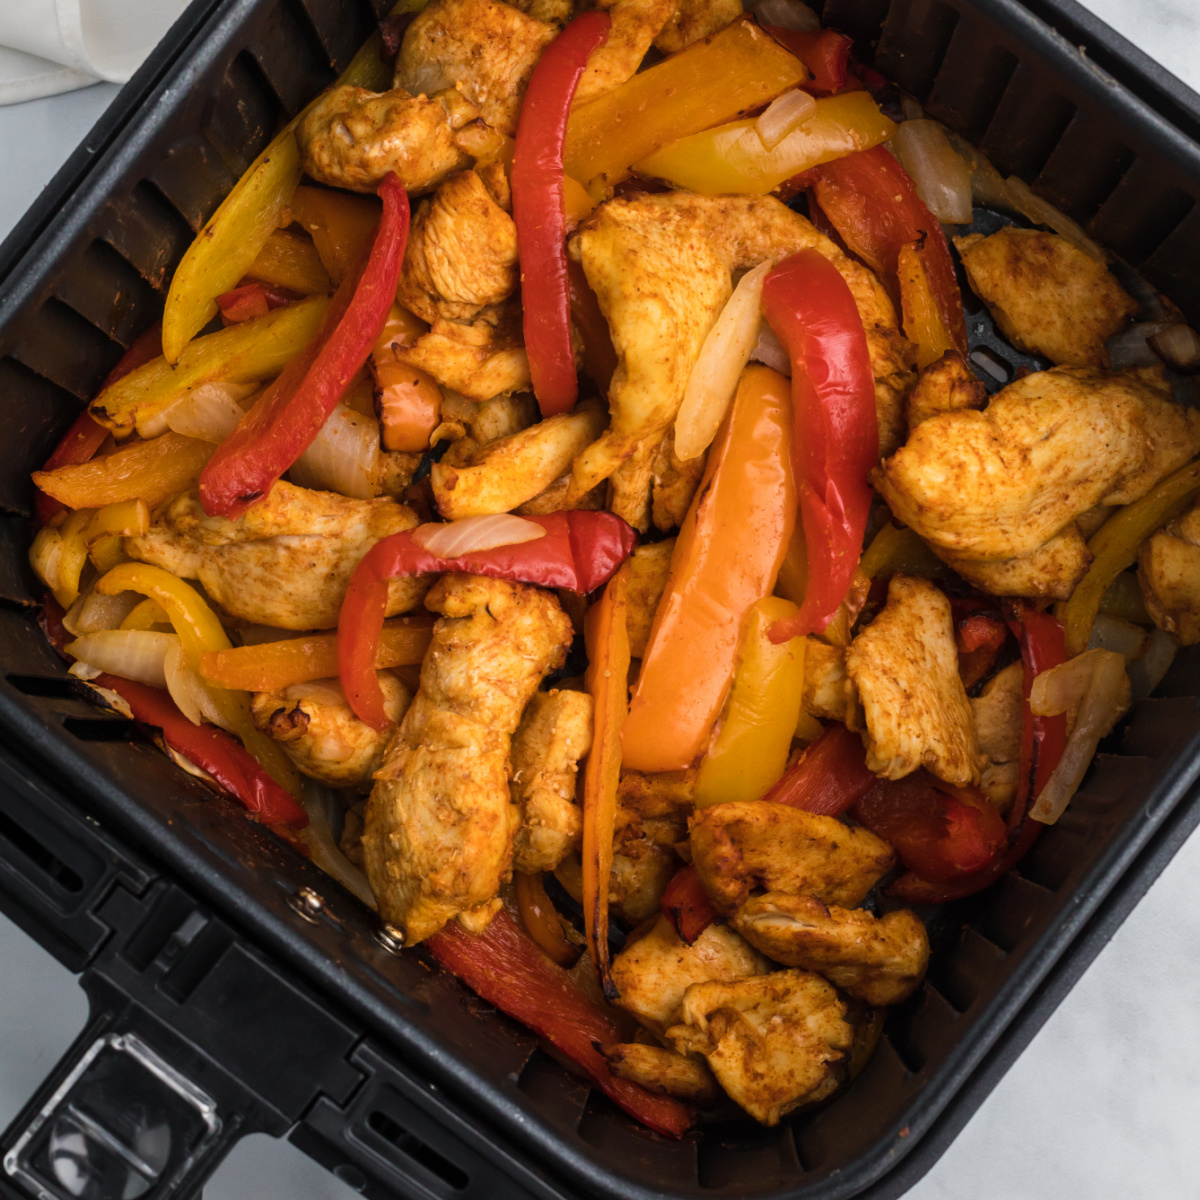 Air Fryer Fajitas with chicken and vegetables in the air fryer basket.